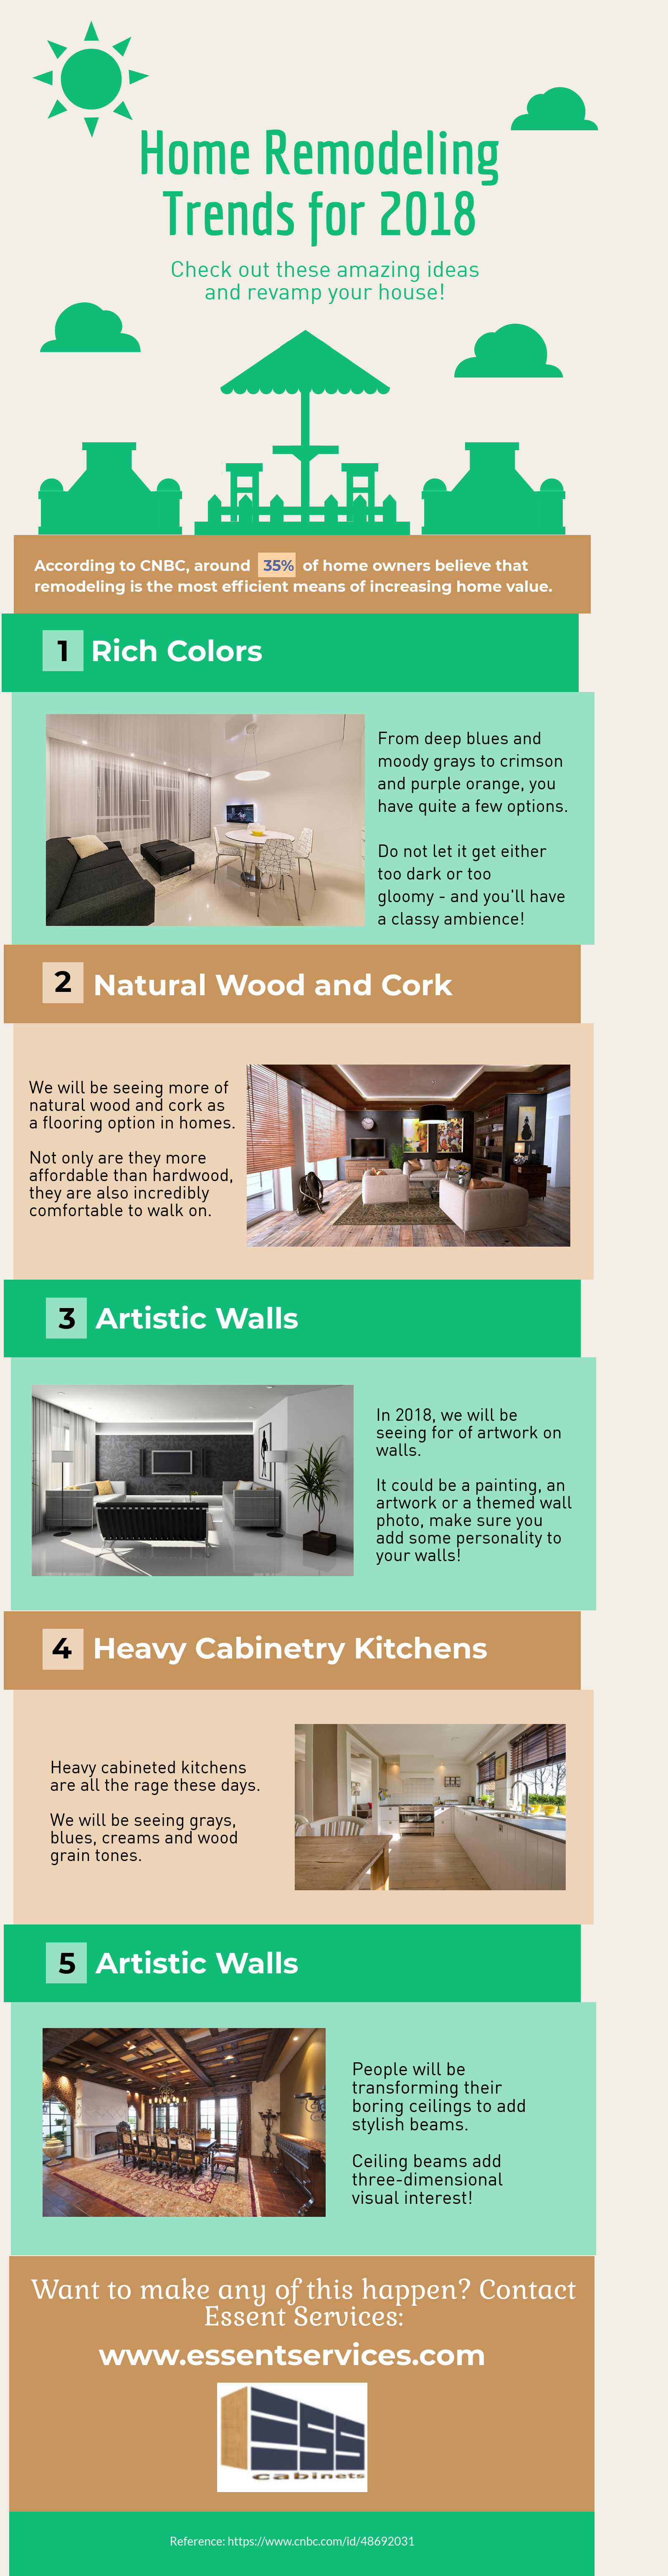 Home Remodeling Trends for 2018